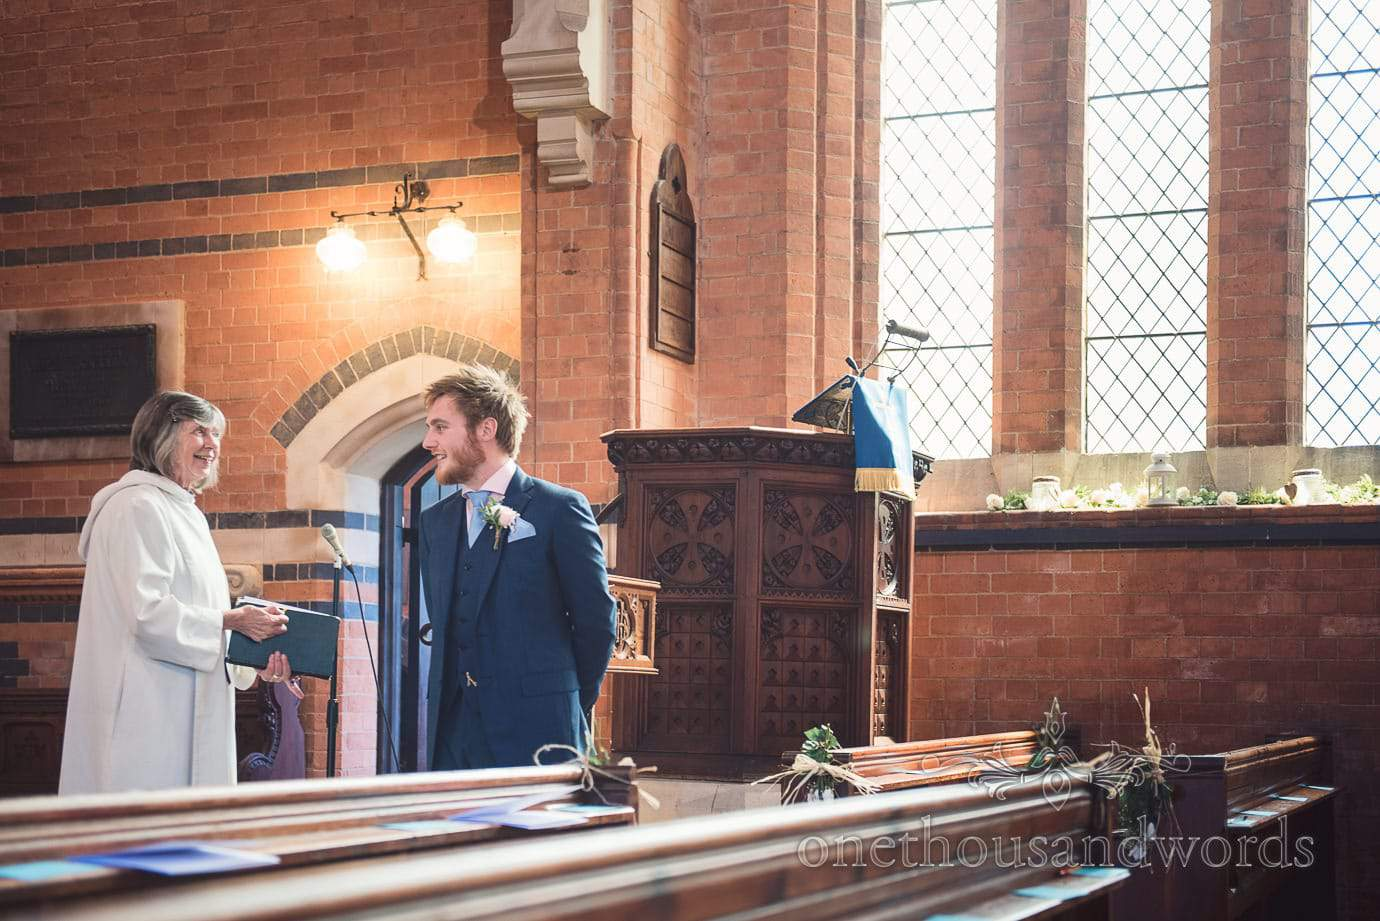 Vicar talks to groom in blue wedding suit in church before wedding ceremony